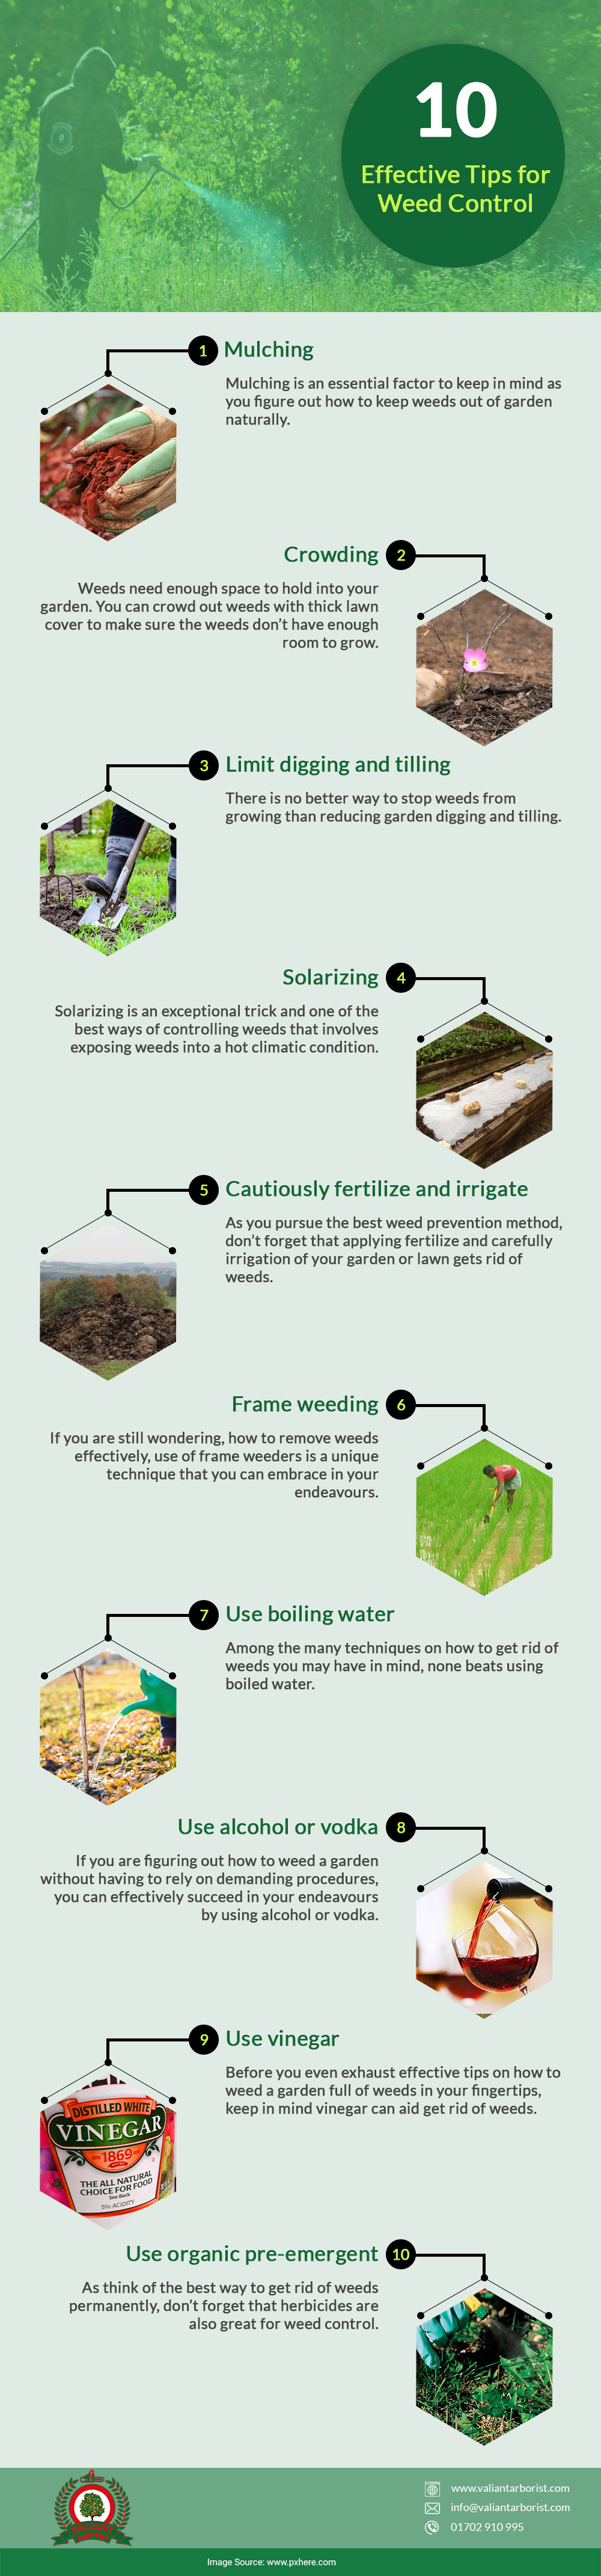 tips for weed control